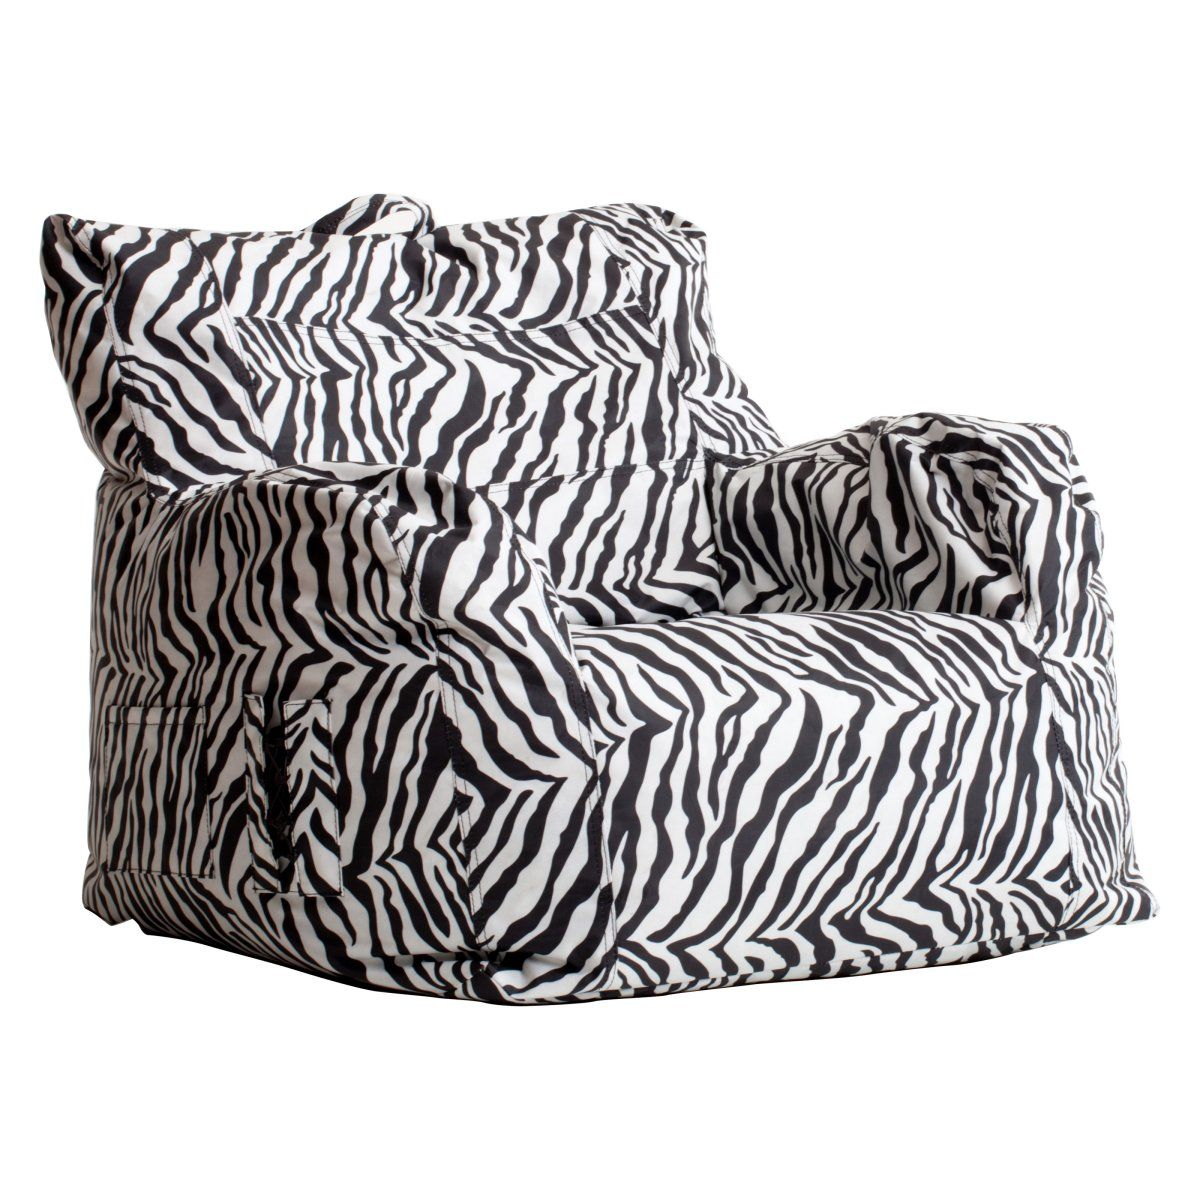 Smart Max Dorm Bean Bag Chair - Zebra